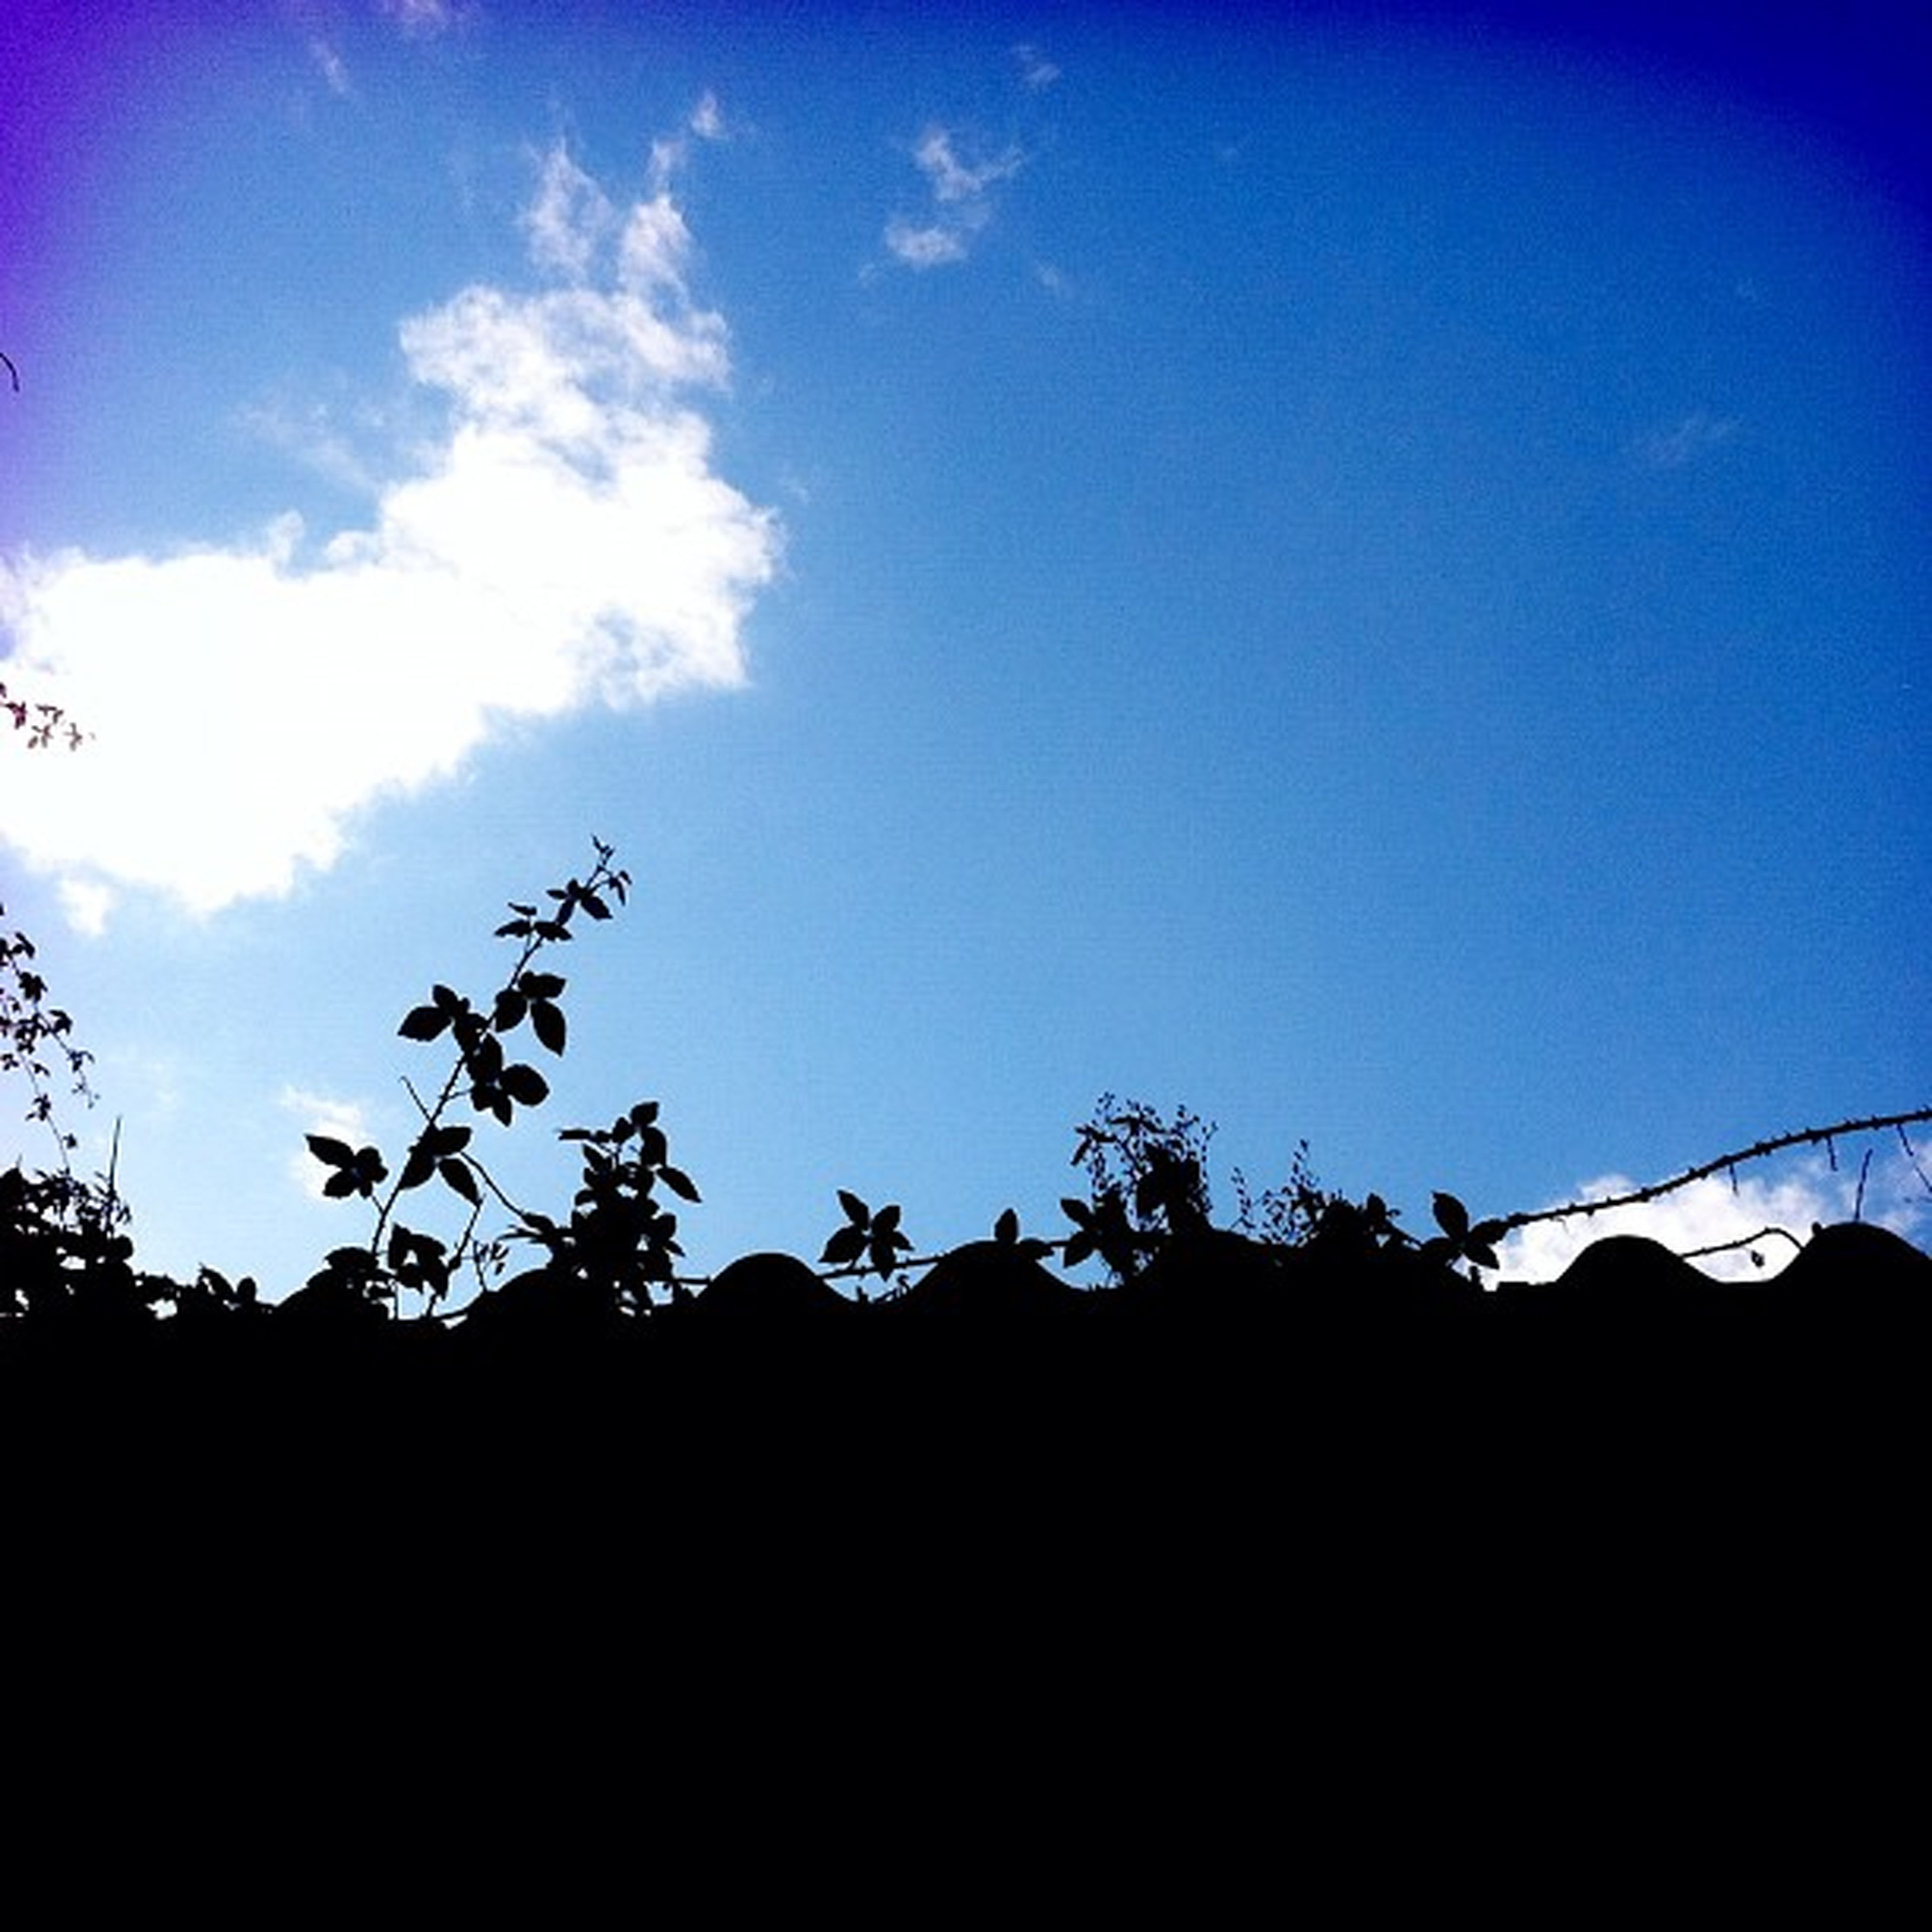 blue, low angle view, silhouette, copy space, tranquility, clear sky, sky, nature, beauty in nature, tree, tranquil scene, growth, scenics, outdoors, landscape, plant, dusk, no people, field, idyllic